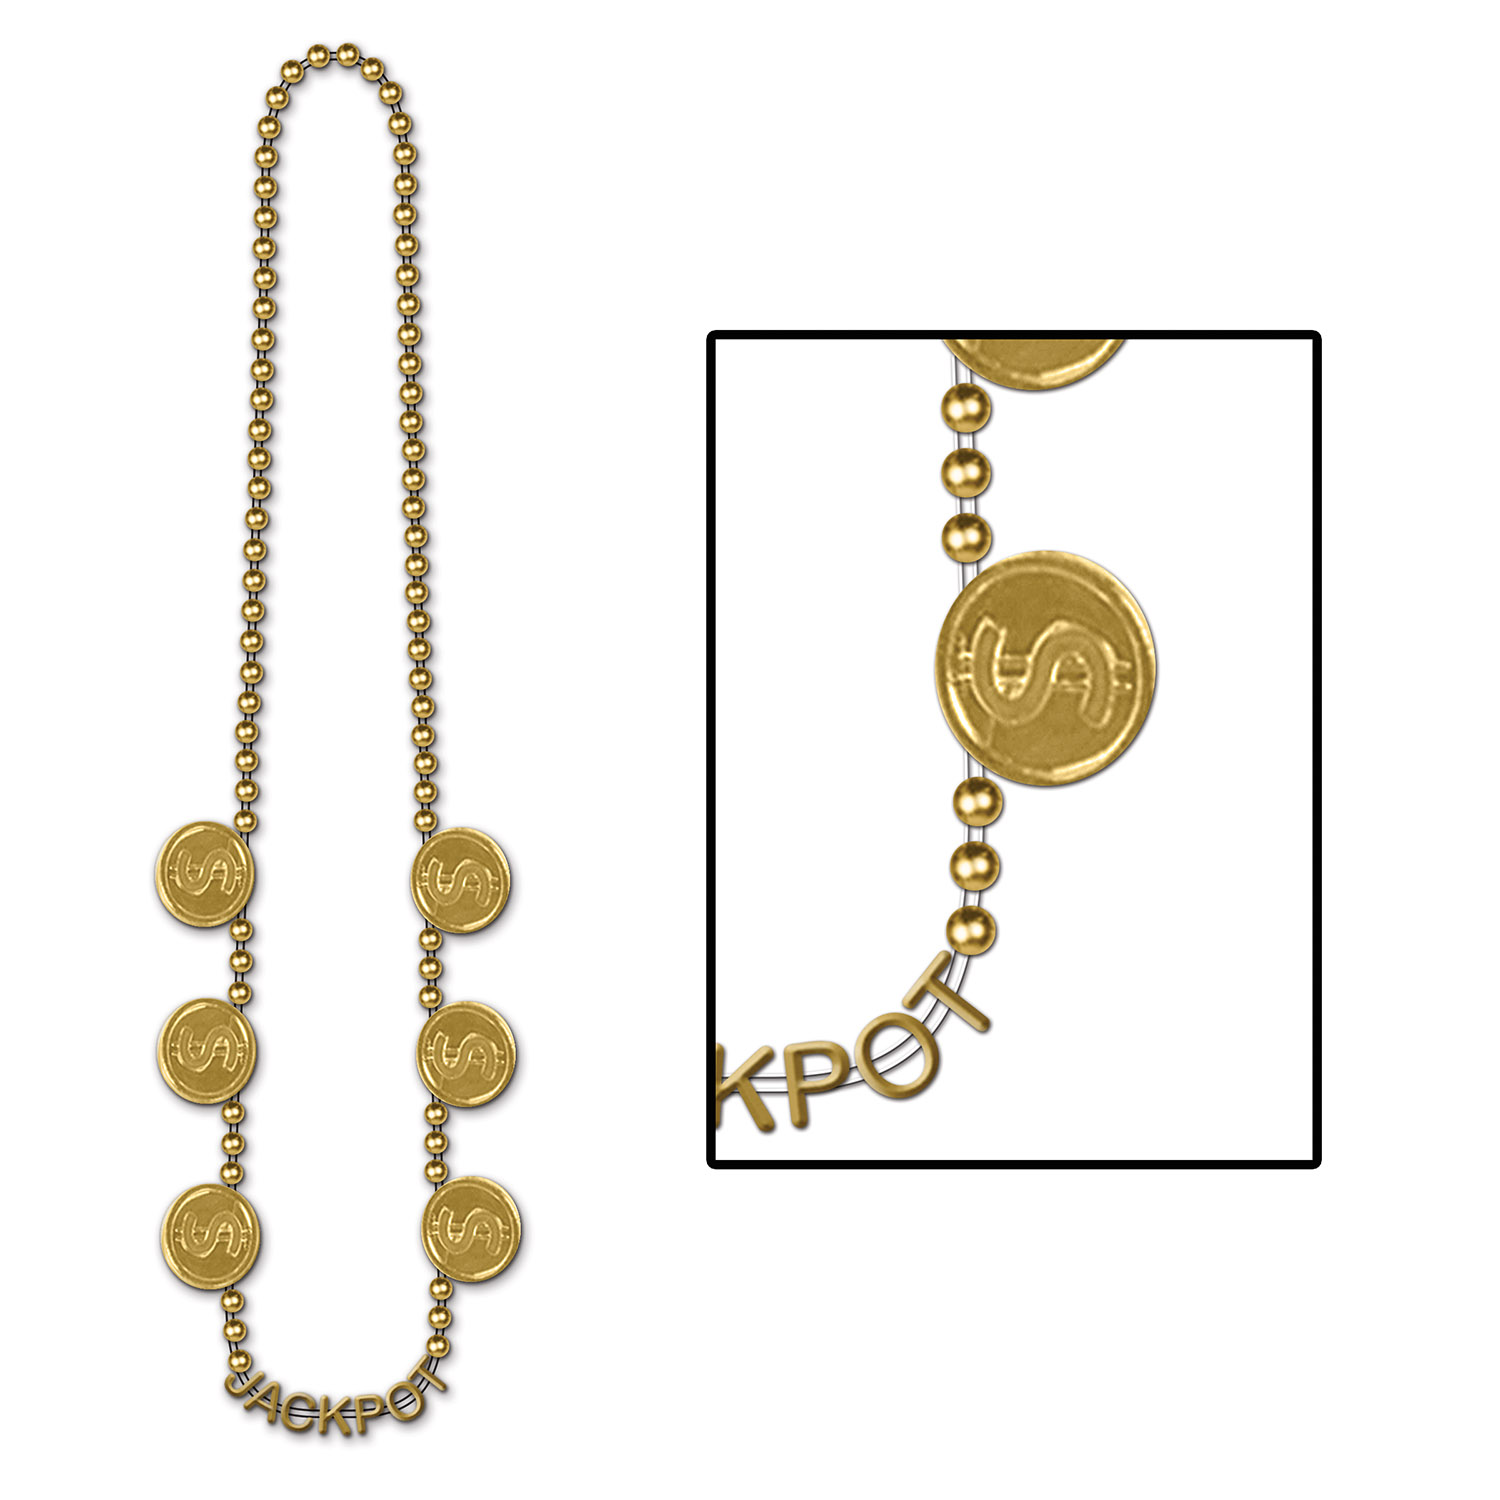 gold beads with dollar sign medallions around the side and jackpot written at the bottom of the necklace